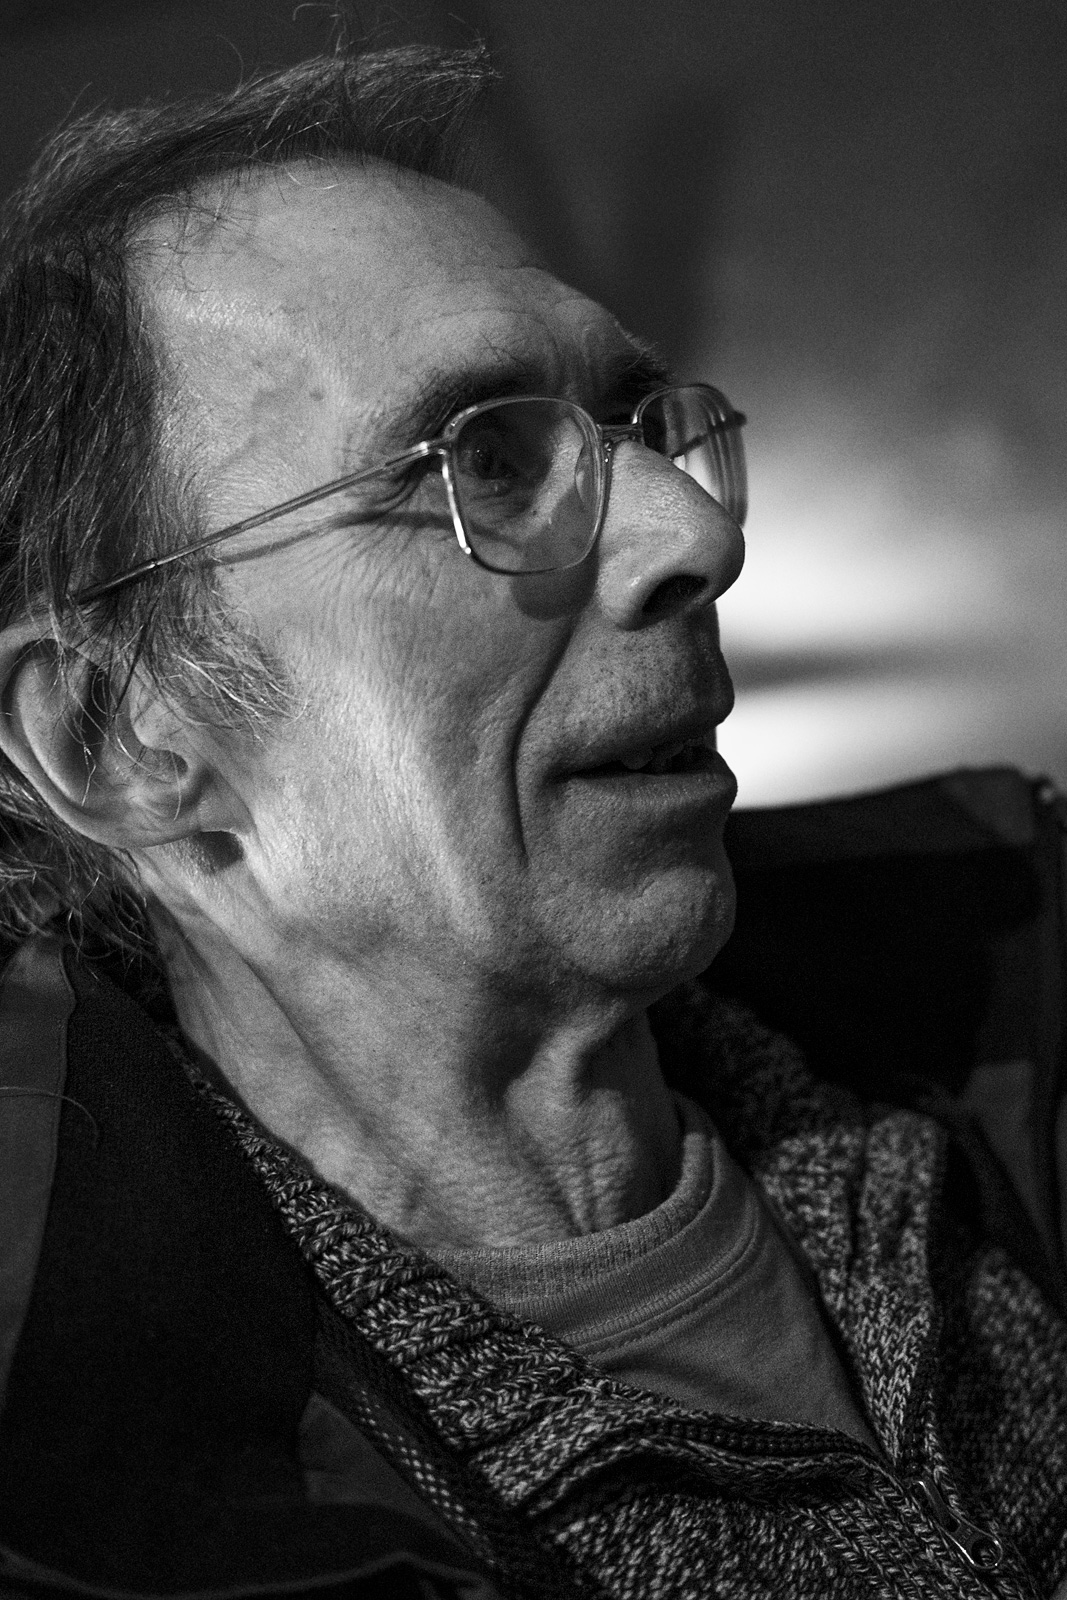 Man wearing spectacles looking sideways in conversation candid black and white portrait Brighton UK © P. Maton 2018 eyeteeth.net